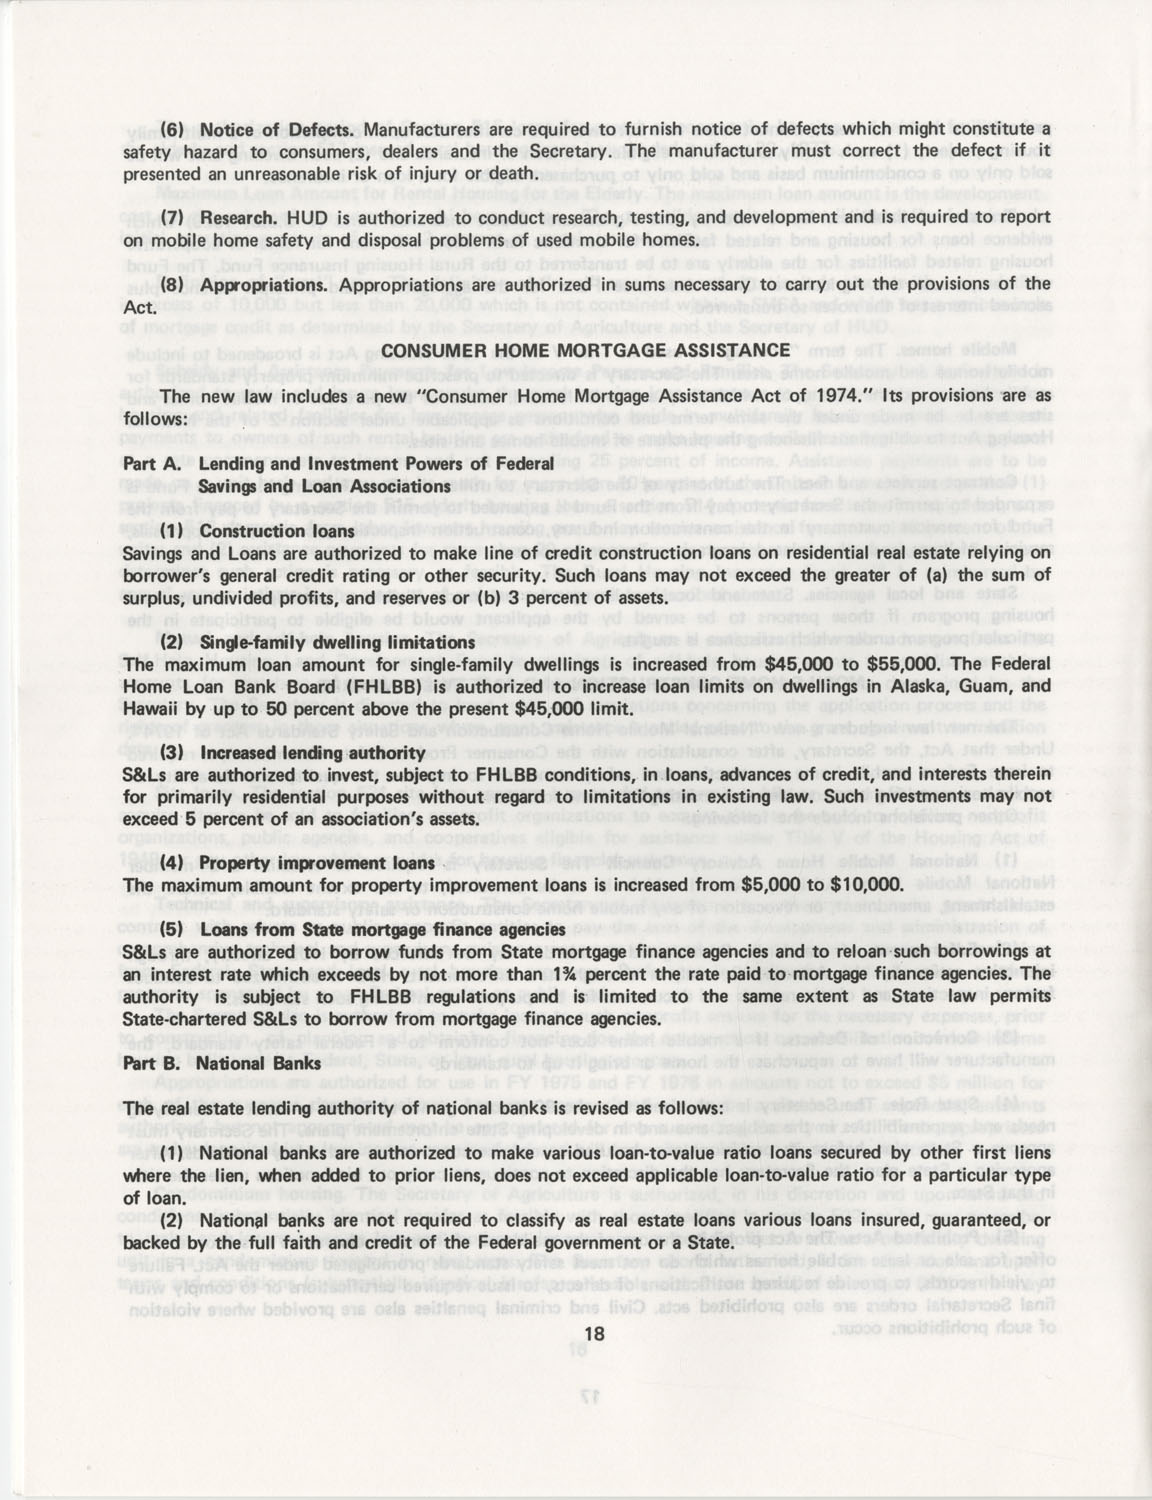 Summary of the Housing and Community Development Act of 1974, Page 18